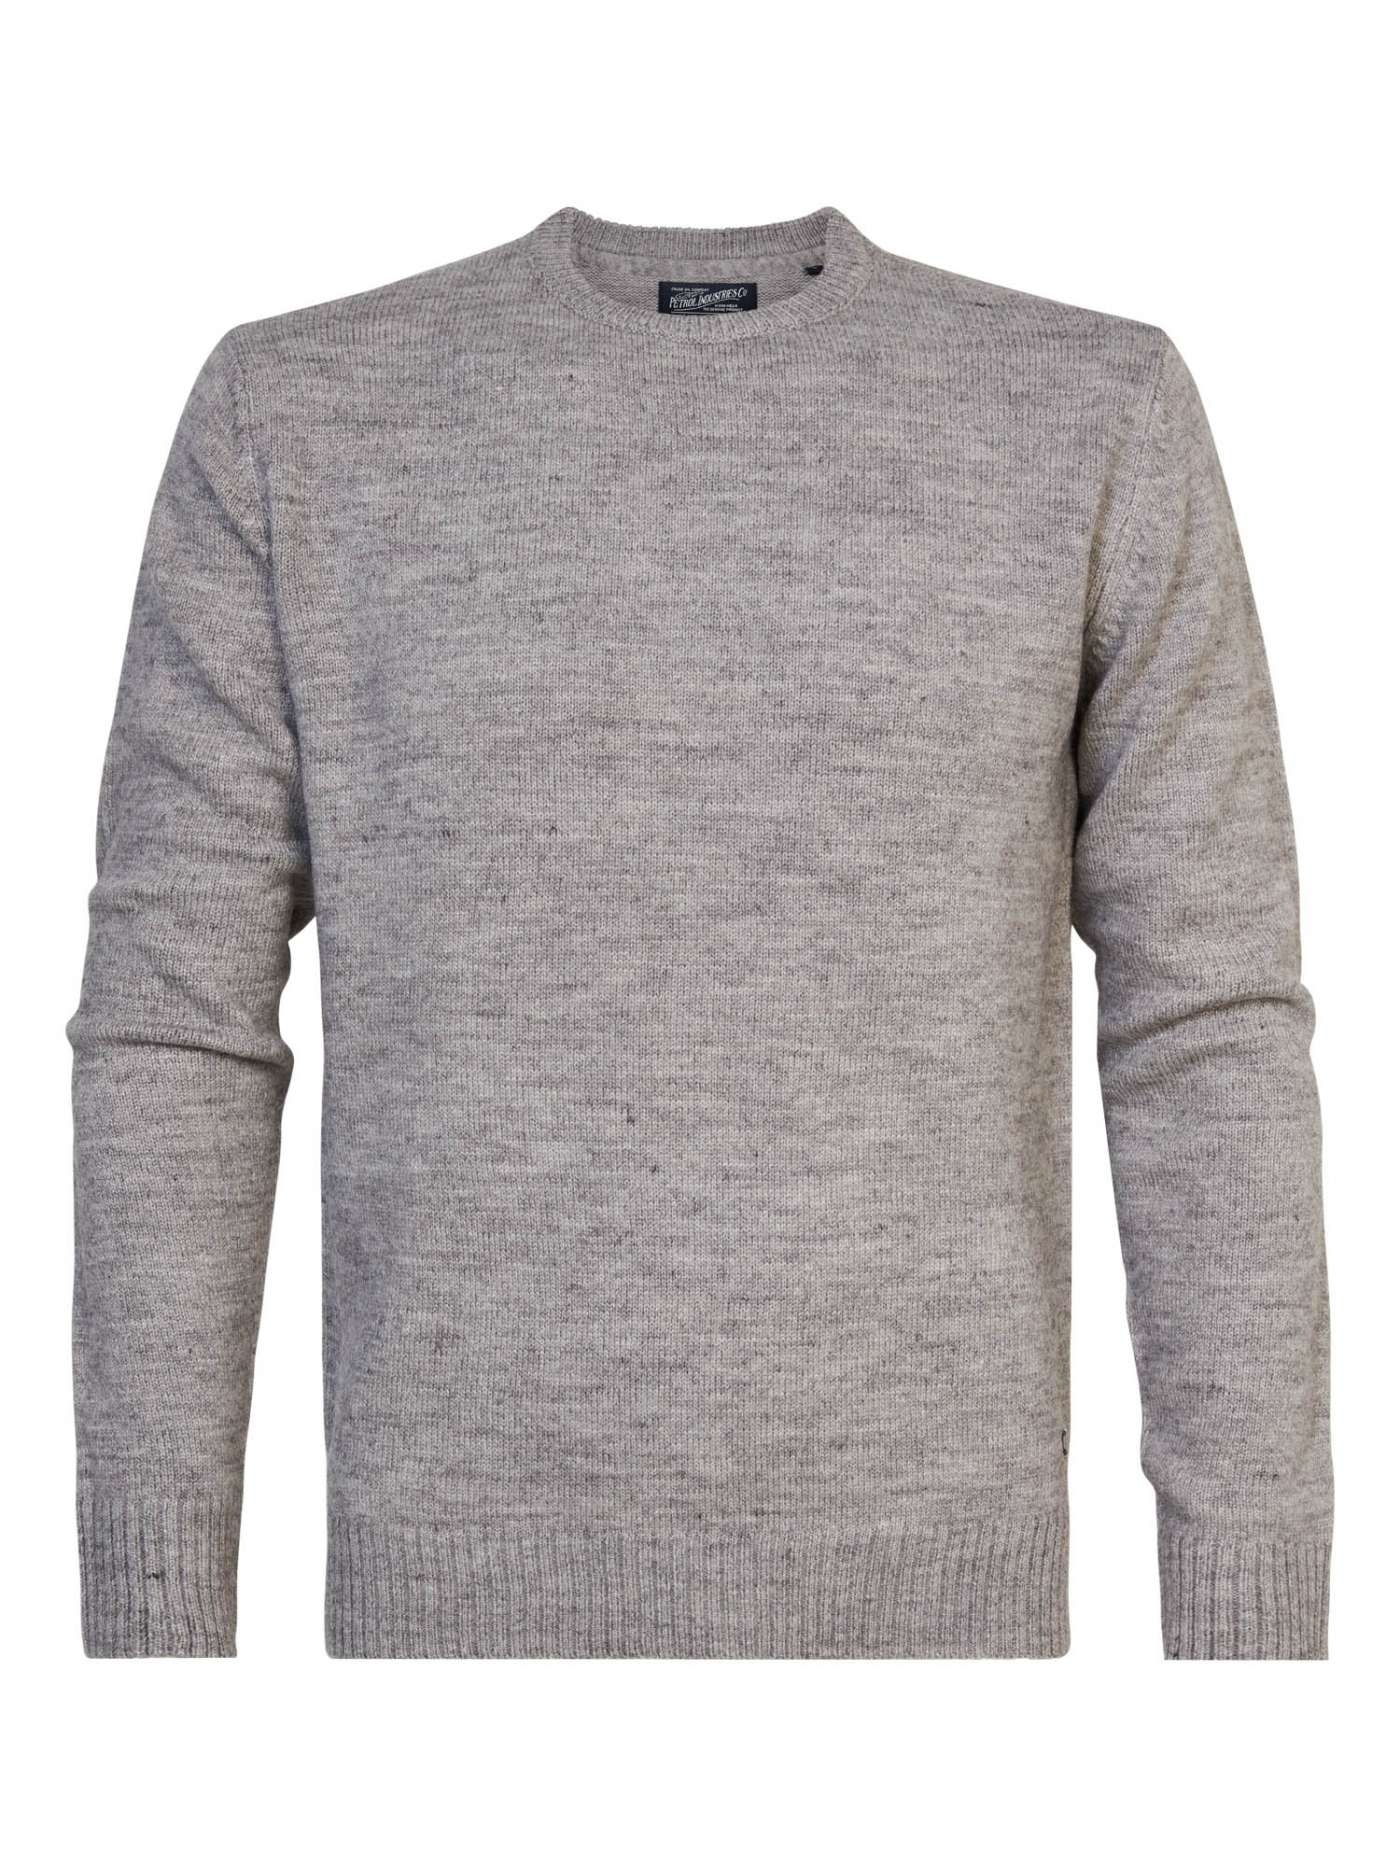 Wool-mix pullover